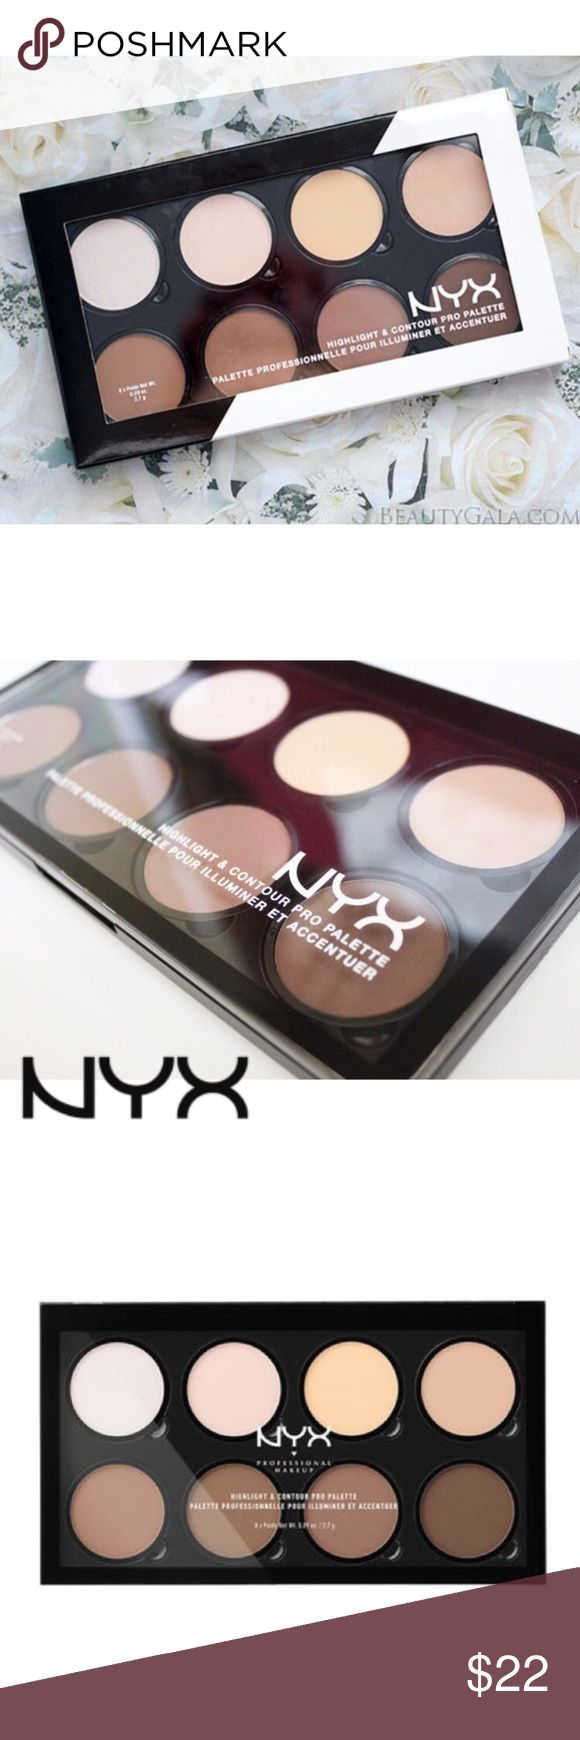 """✨NEW NYX Highlight and Contour Pro Palette  Brand new, unopened NYX Highlight and Contour Pro Palette. From my smoke free home. Original Retail: $30  ABOUT: """"Define your features like a pro with NYX Cosmetics refillable Highlight & Contour Pro Palette! Each set includes four customizable highlighting and contouring shades perfect for emphasizing your favorite features."""" NYX Makeup"""